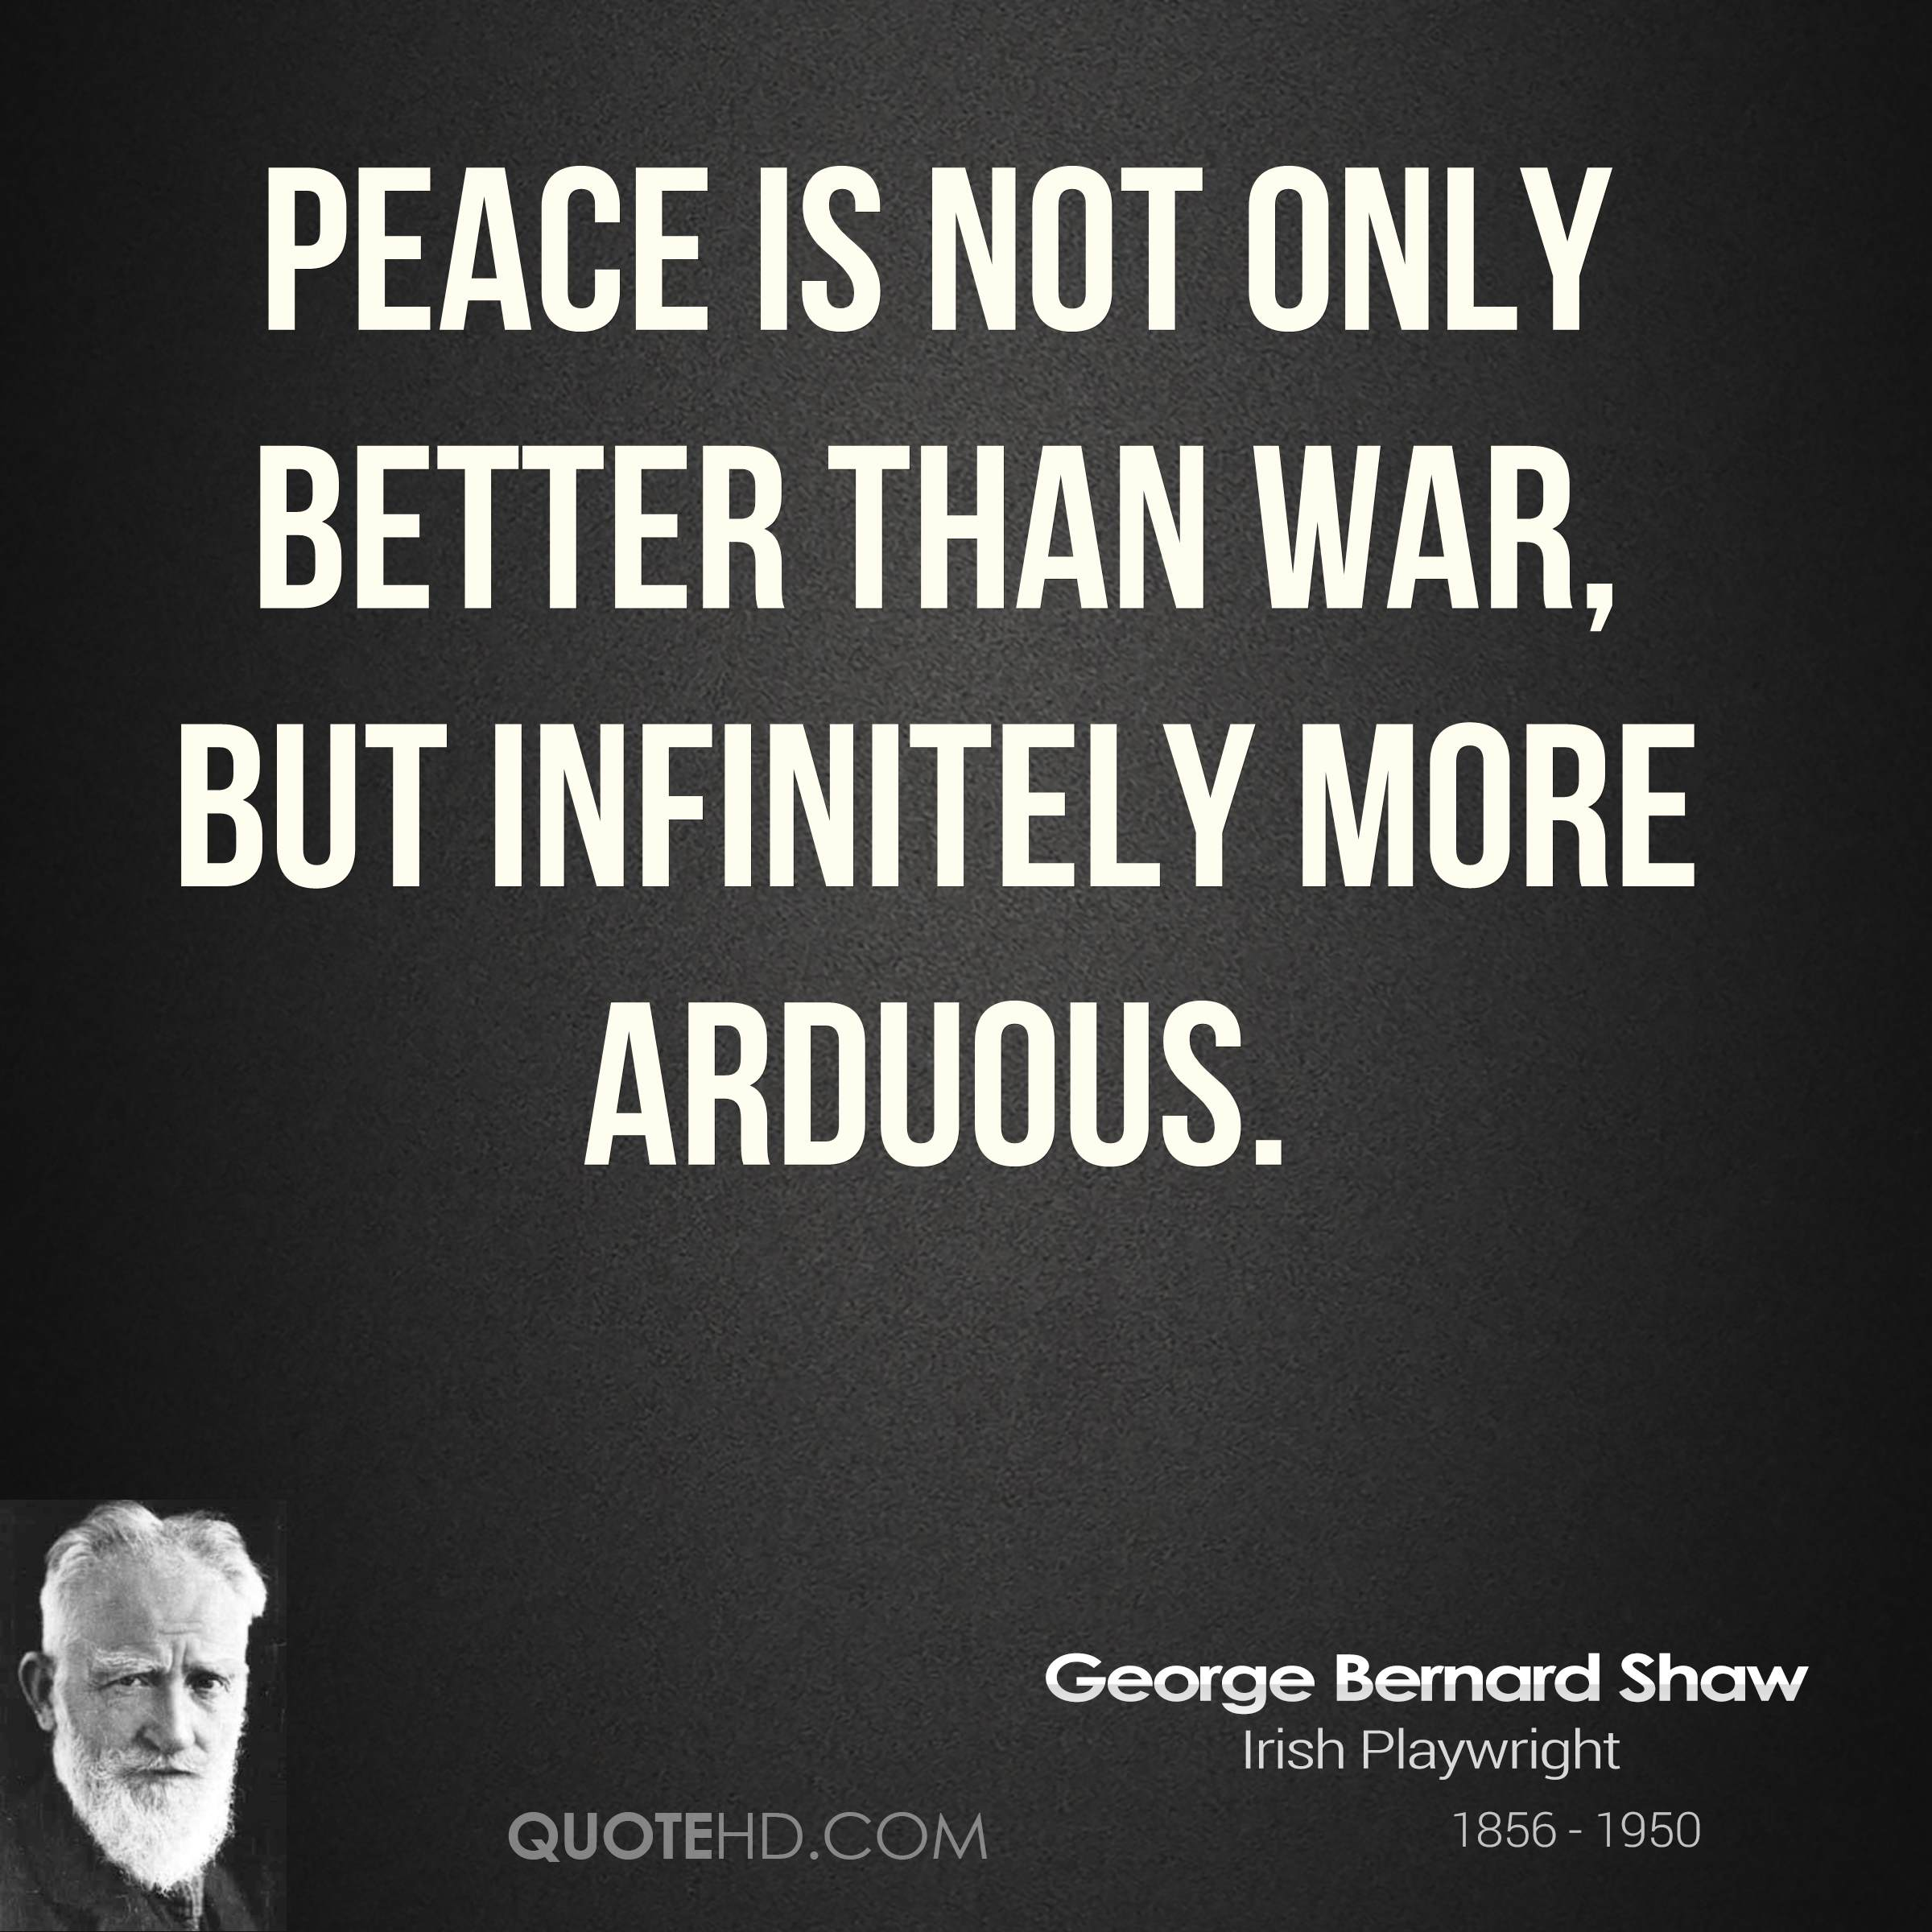 essay on wars are not good The case against preemptive war this essay proposes to confront this case for preemptive war on iraq head on if this seems not good enough.